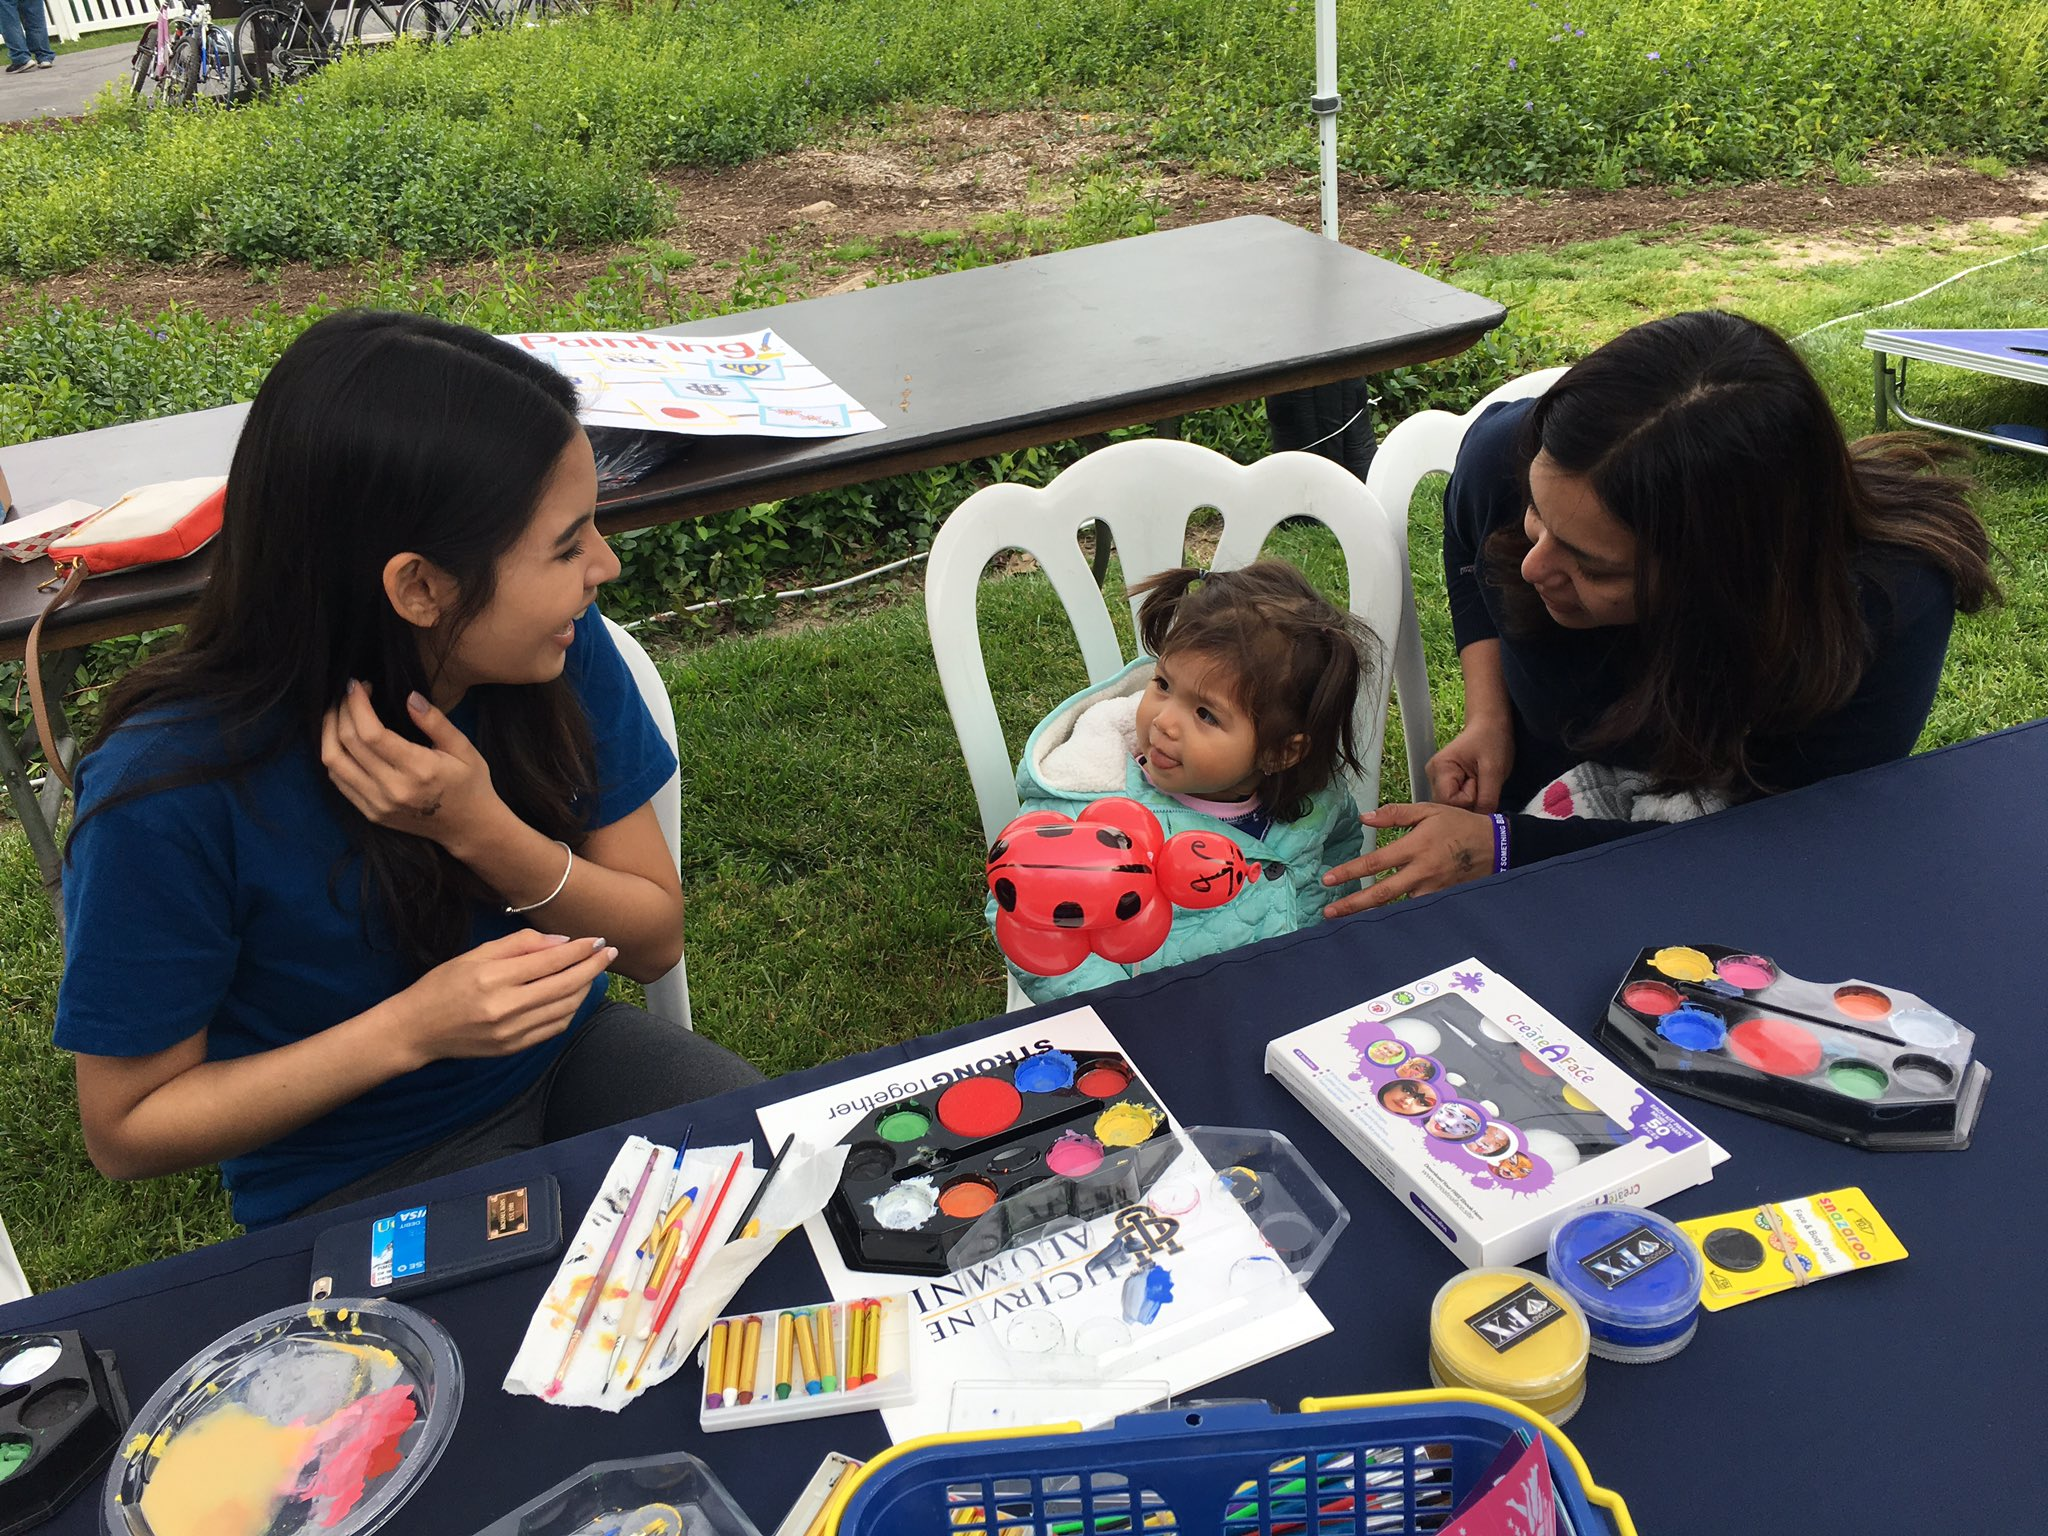 Balloons & Face Painting! #UCIHomecoming https://t.co/iqCUubFInX